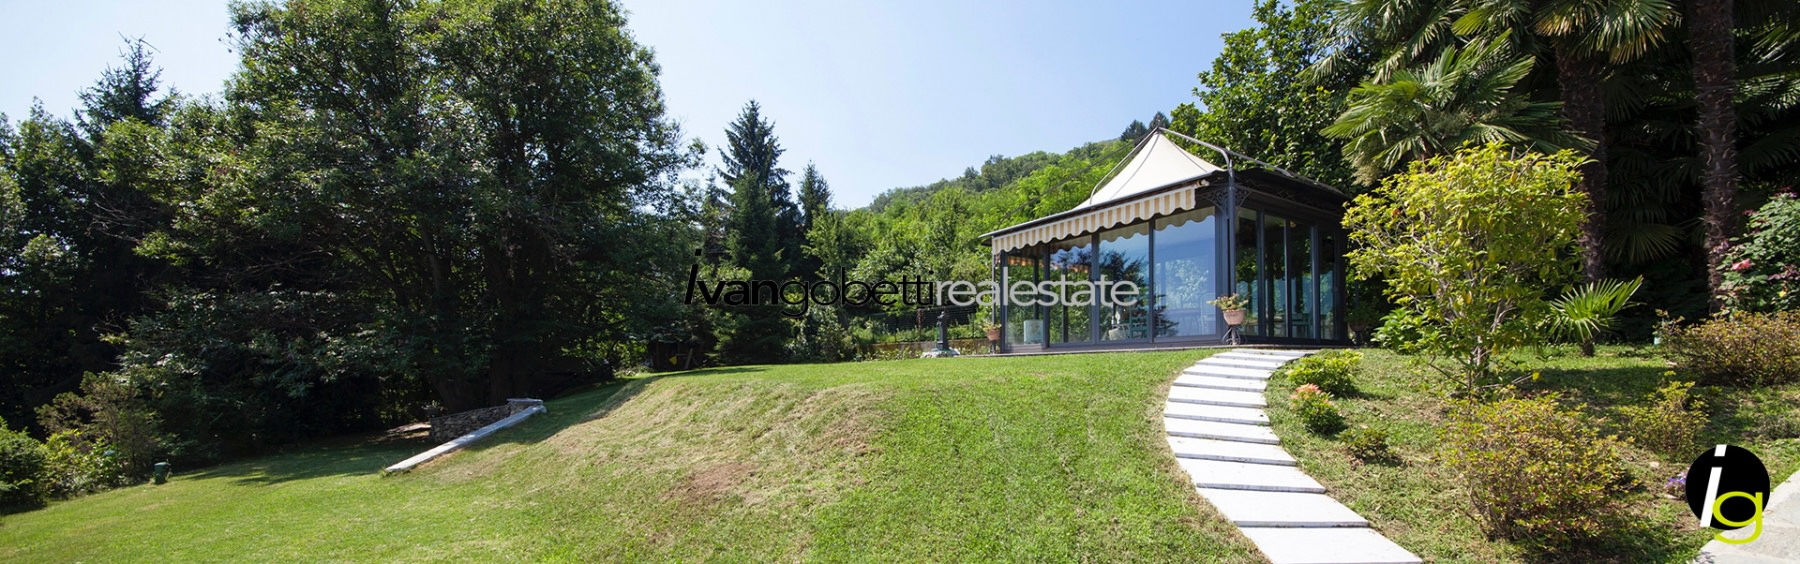 Luxury villa with pool on Lake Maggiore